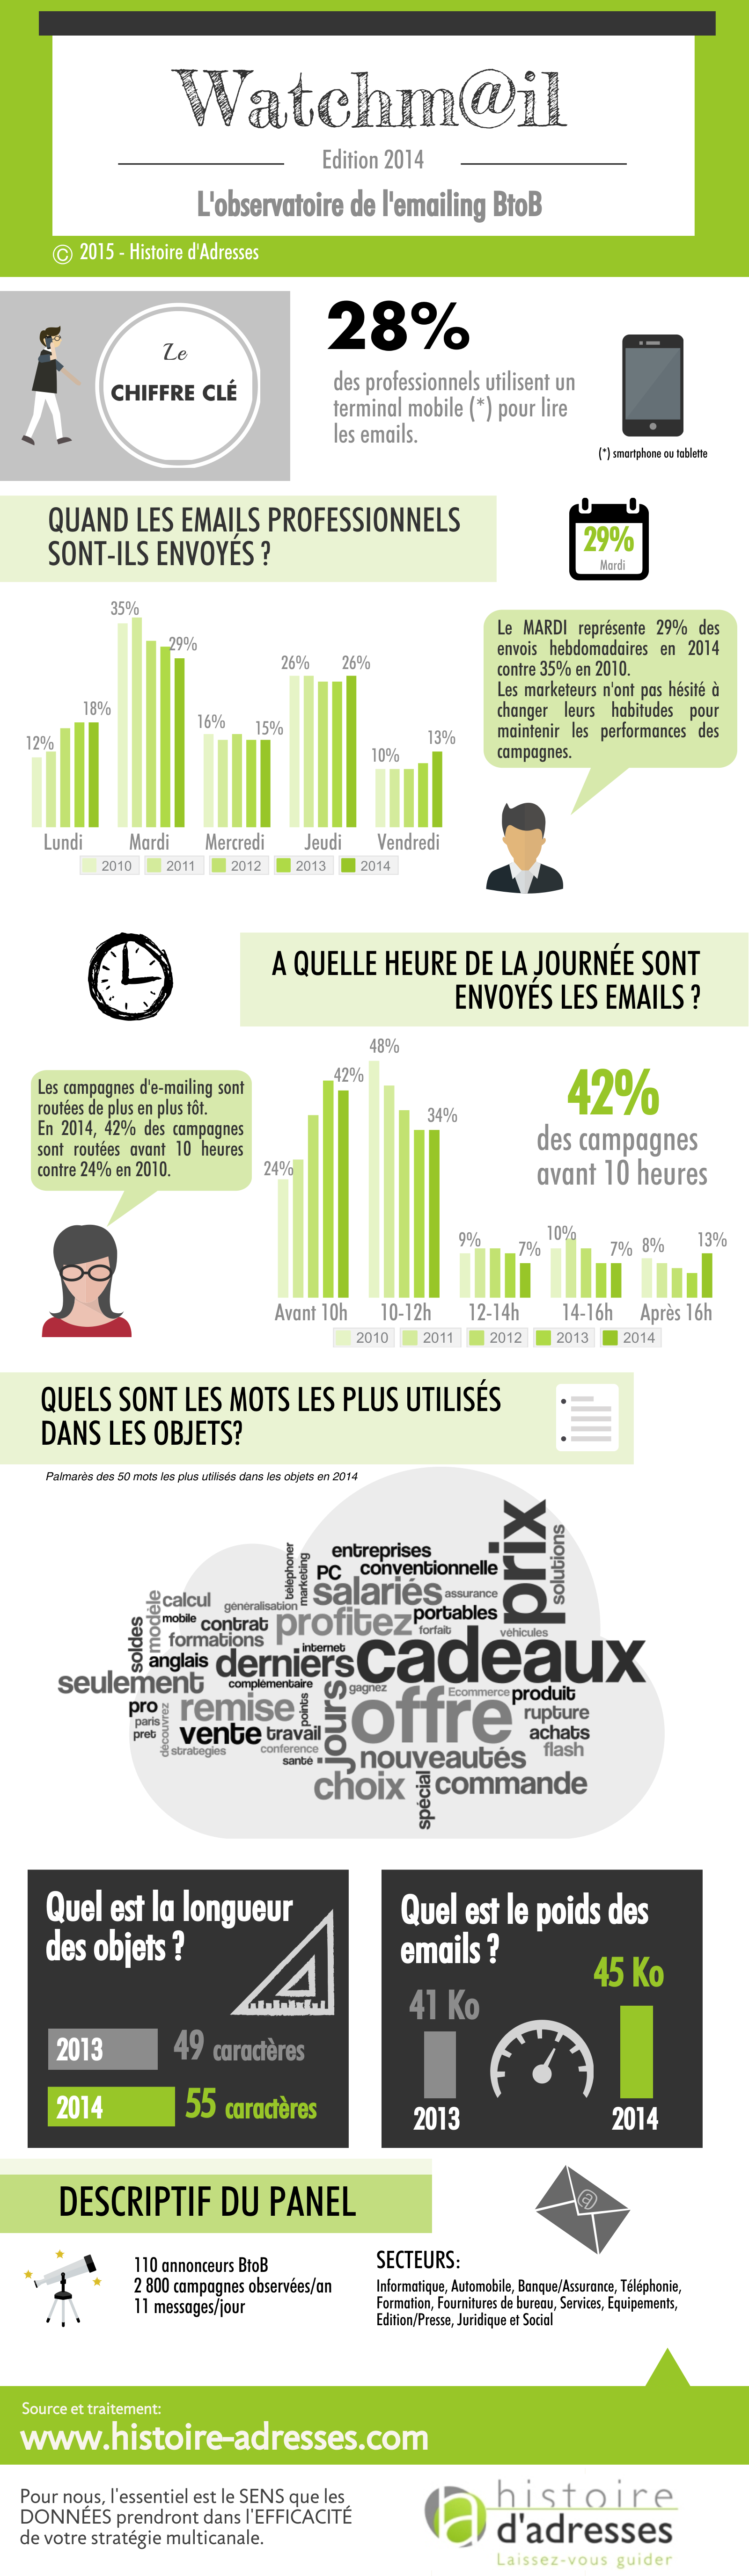 INFOGRAPHIE_HA_Watchmail_2014